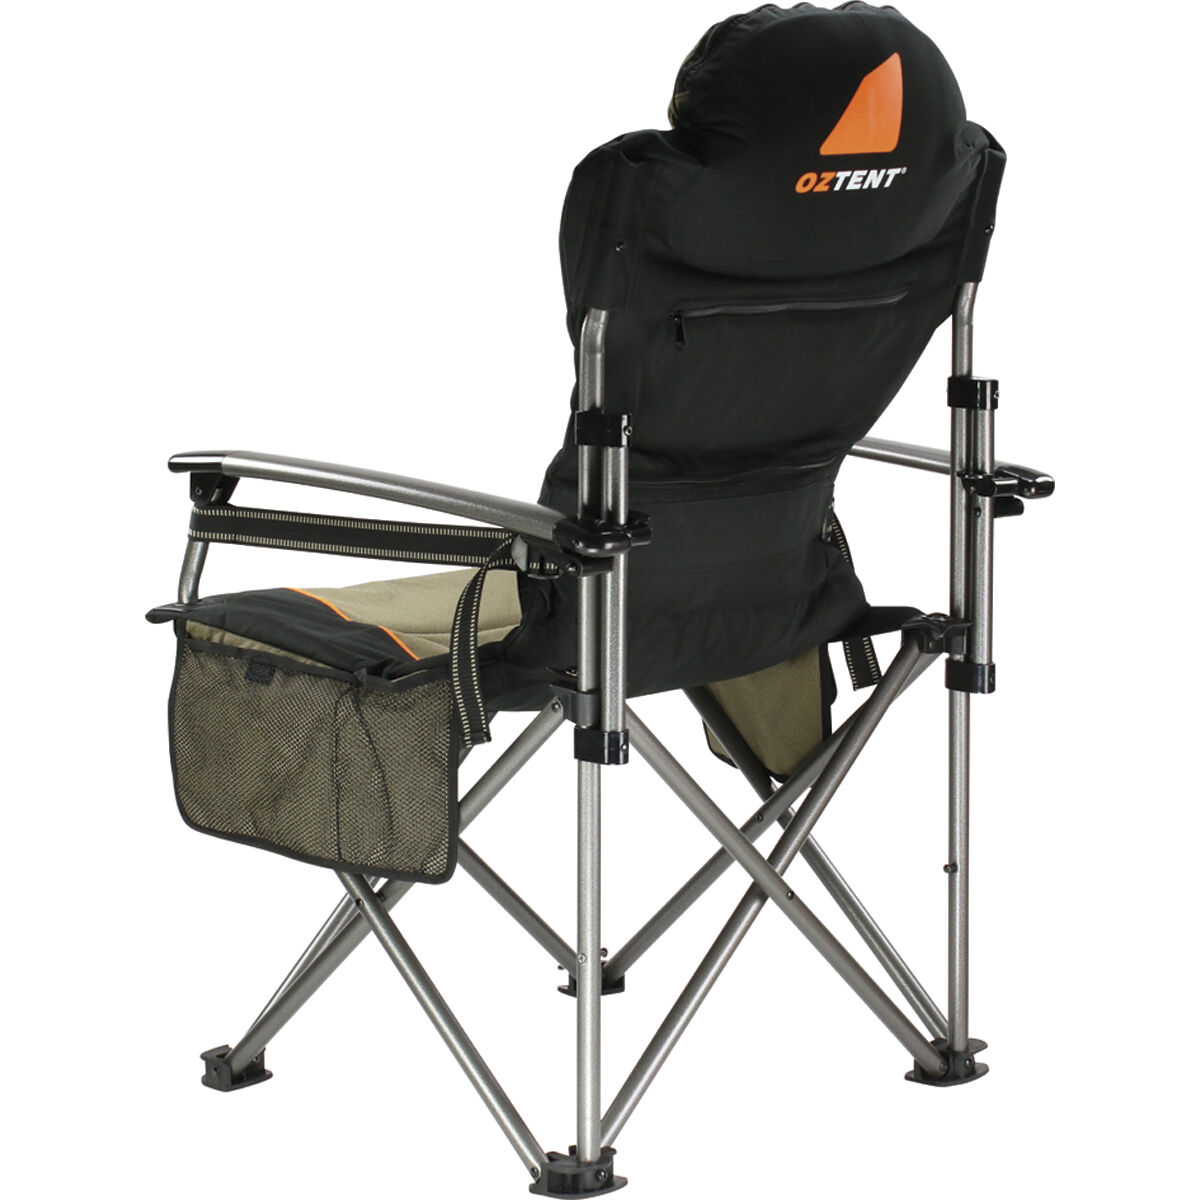 oztent king kokoda chair review double x back dining hotspot camp bcf hi res